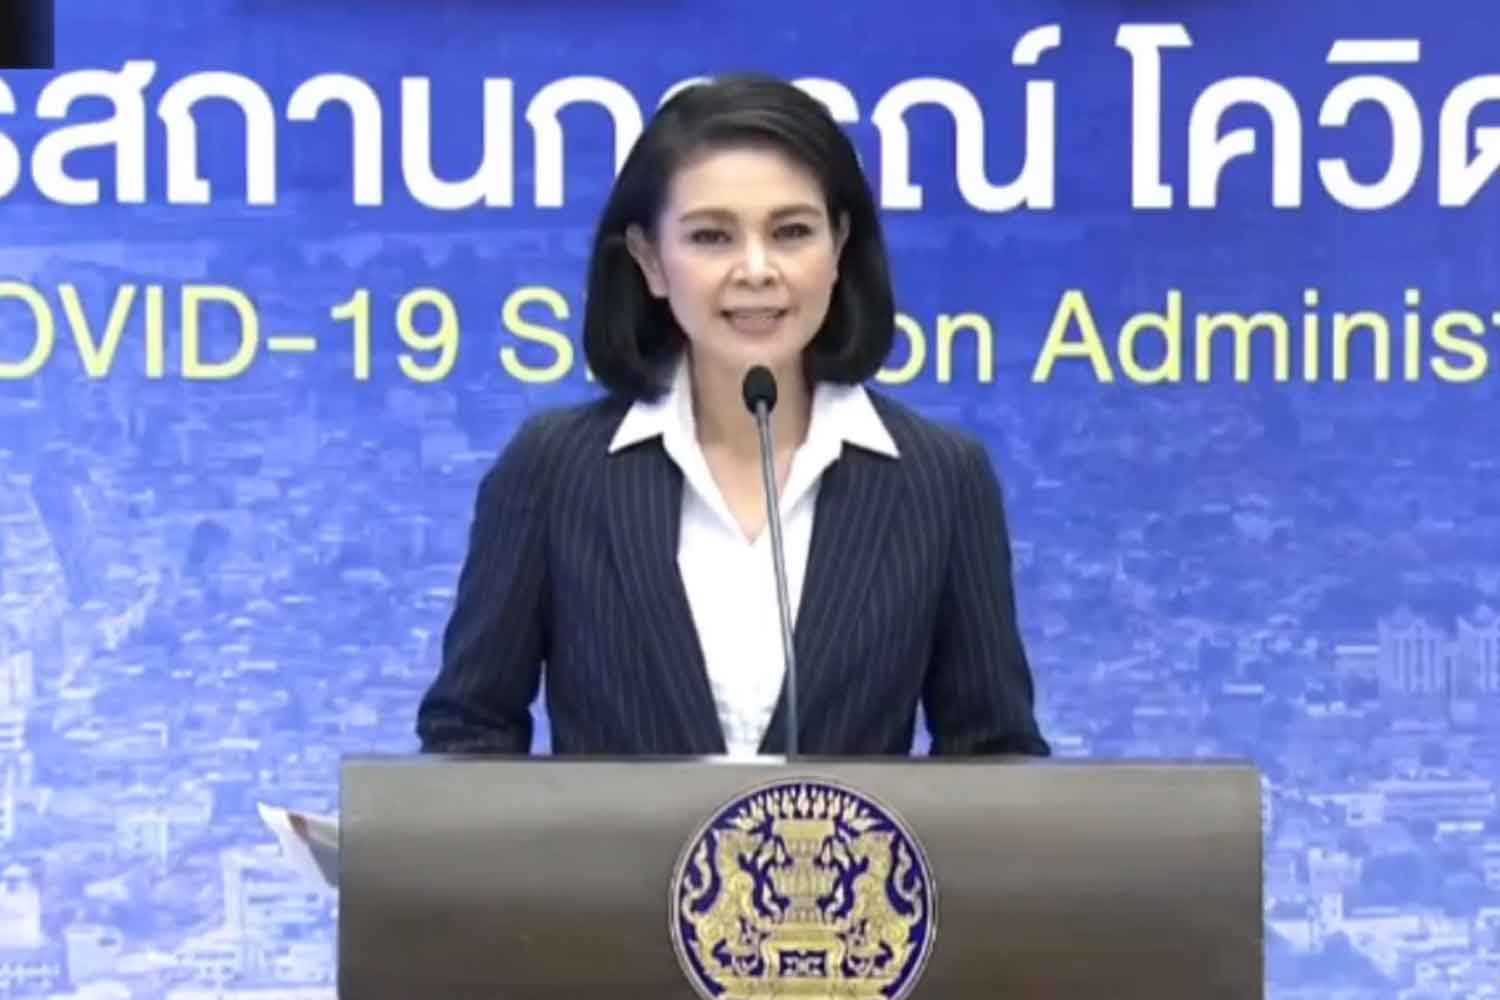 Dr Apisamai Srirangson, assistant spokesperson for the Centre for Covid-19 Situation Administration, is in her press conference at Government House in Bangkok on Wednesday. (Screenshot)